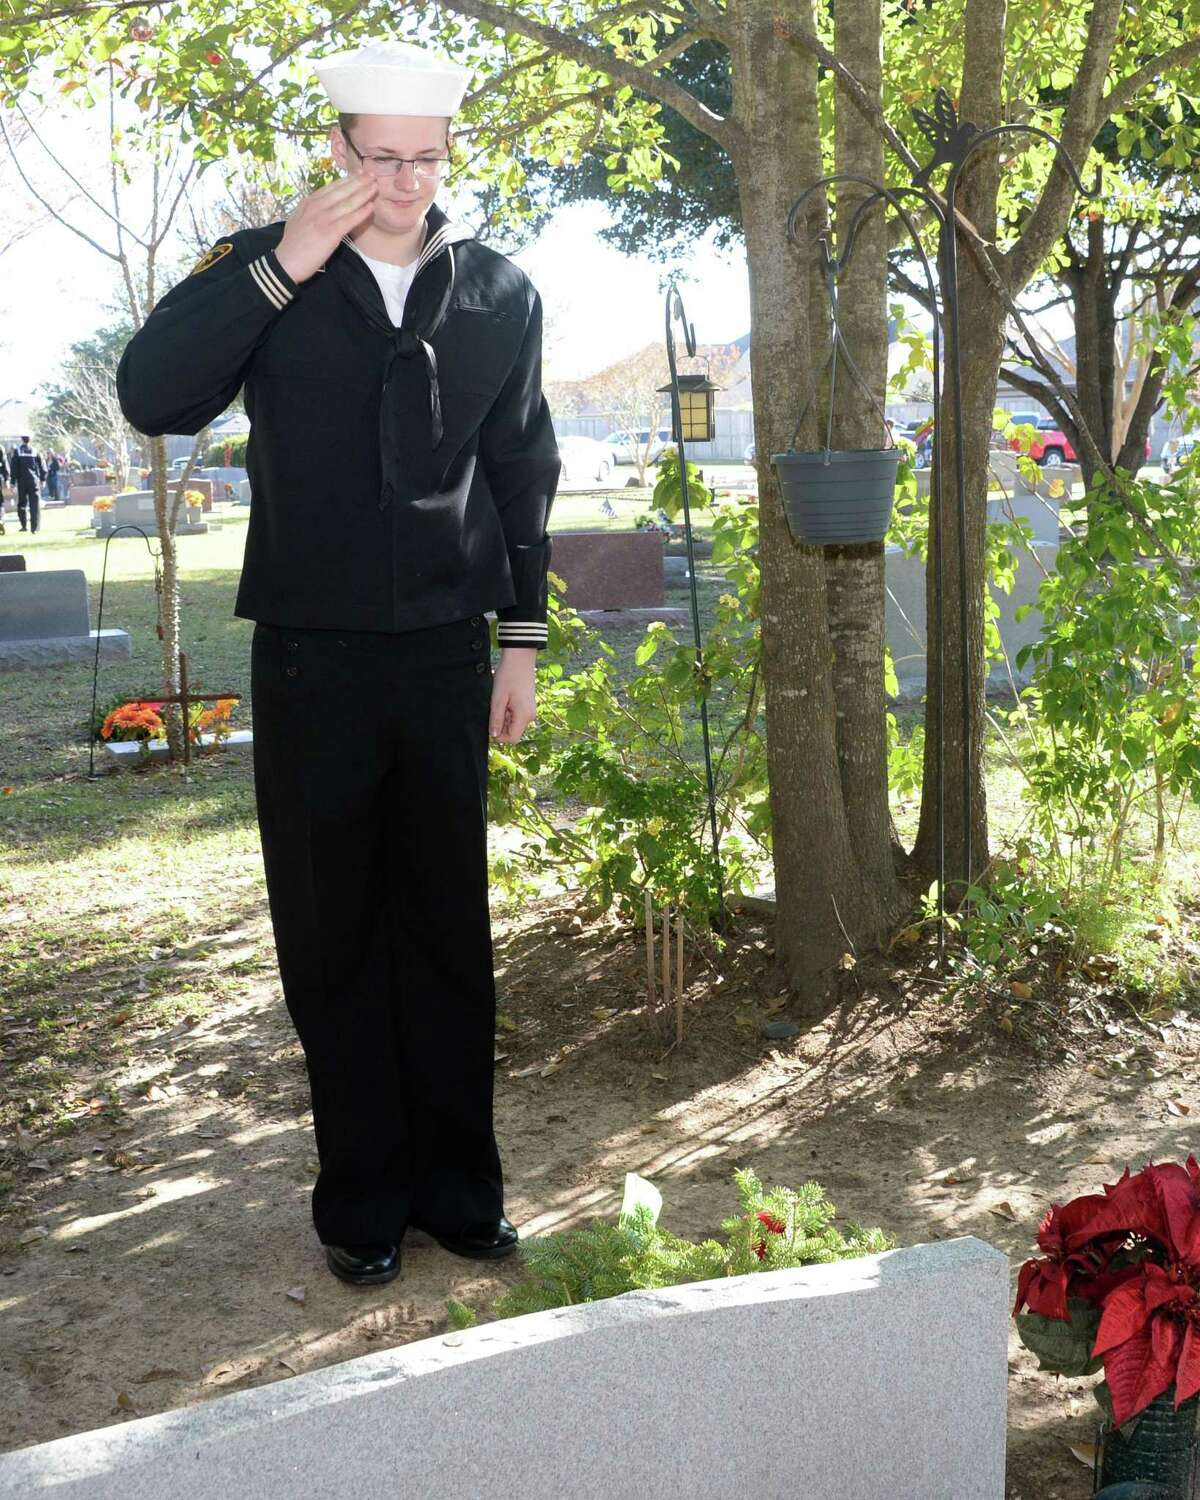 US Navy Sea Cadet Nicholas Geiger salutes after placing a wreath on a grave during the National Wreaths Across America Ceremony at Magnolia Cemetery, Saturday, December 14, 2019 in Katy, TX.